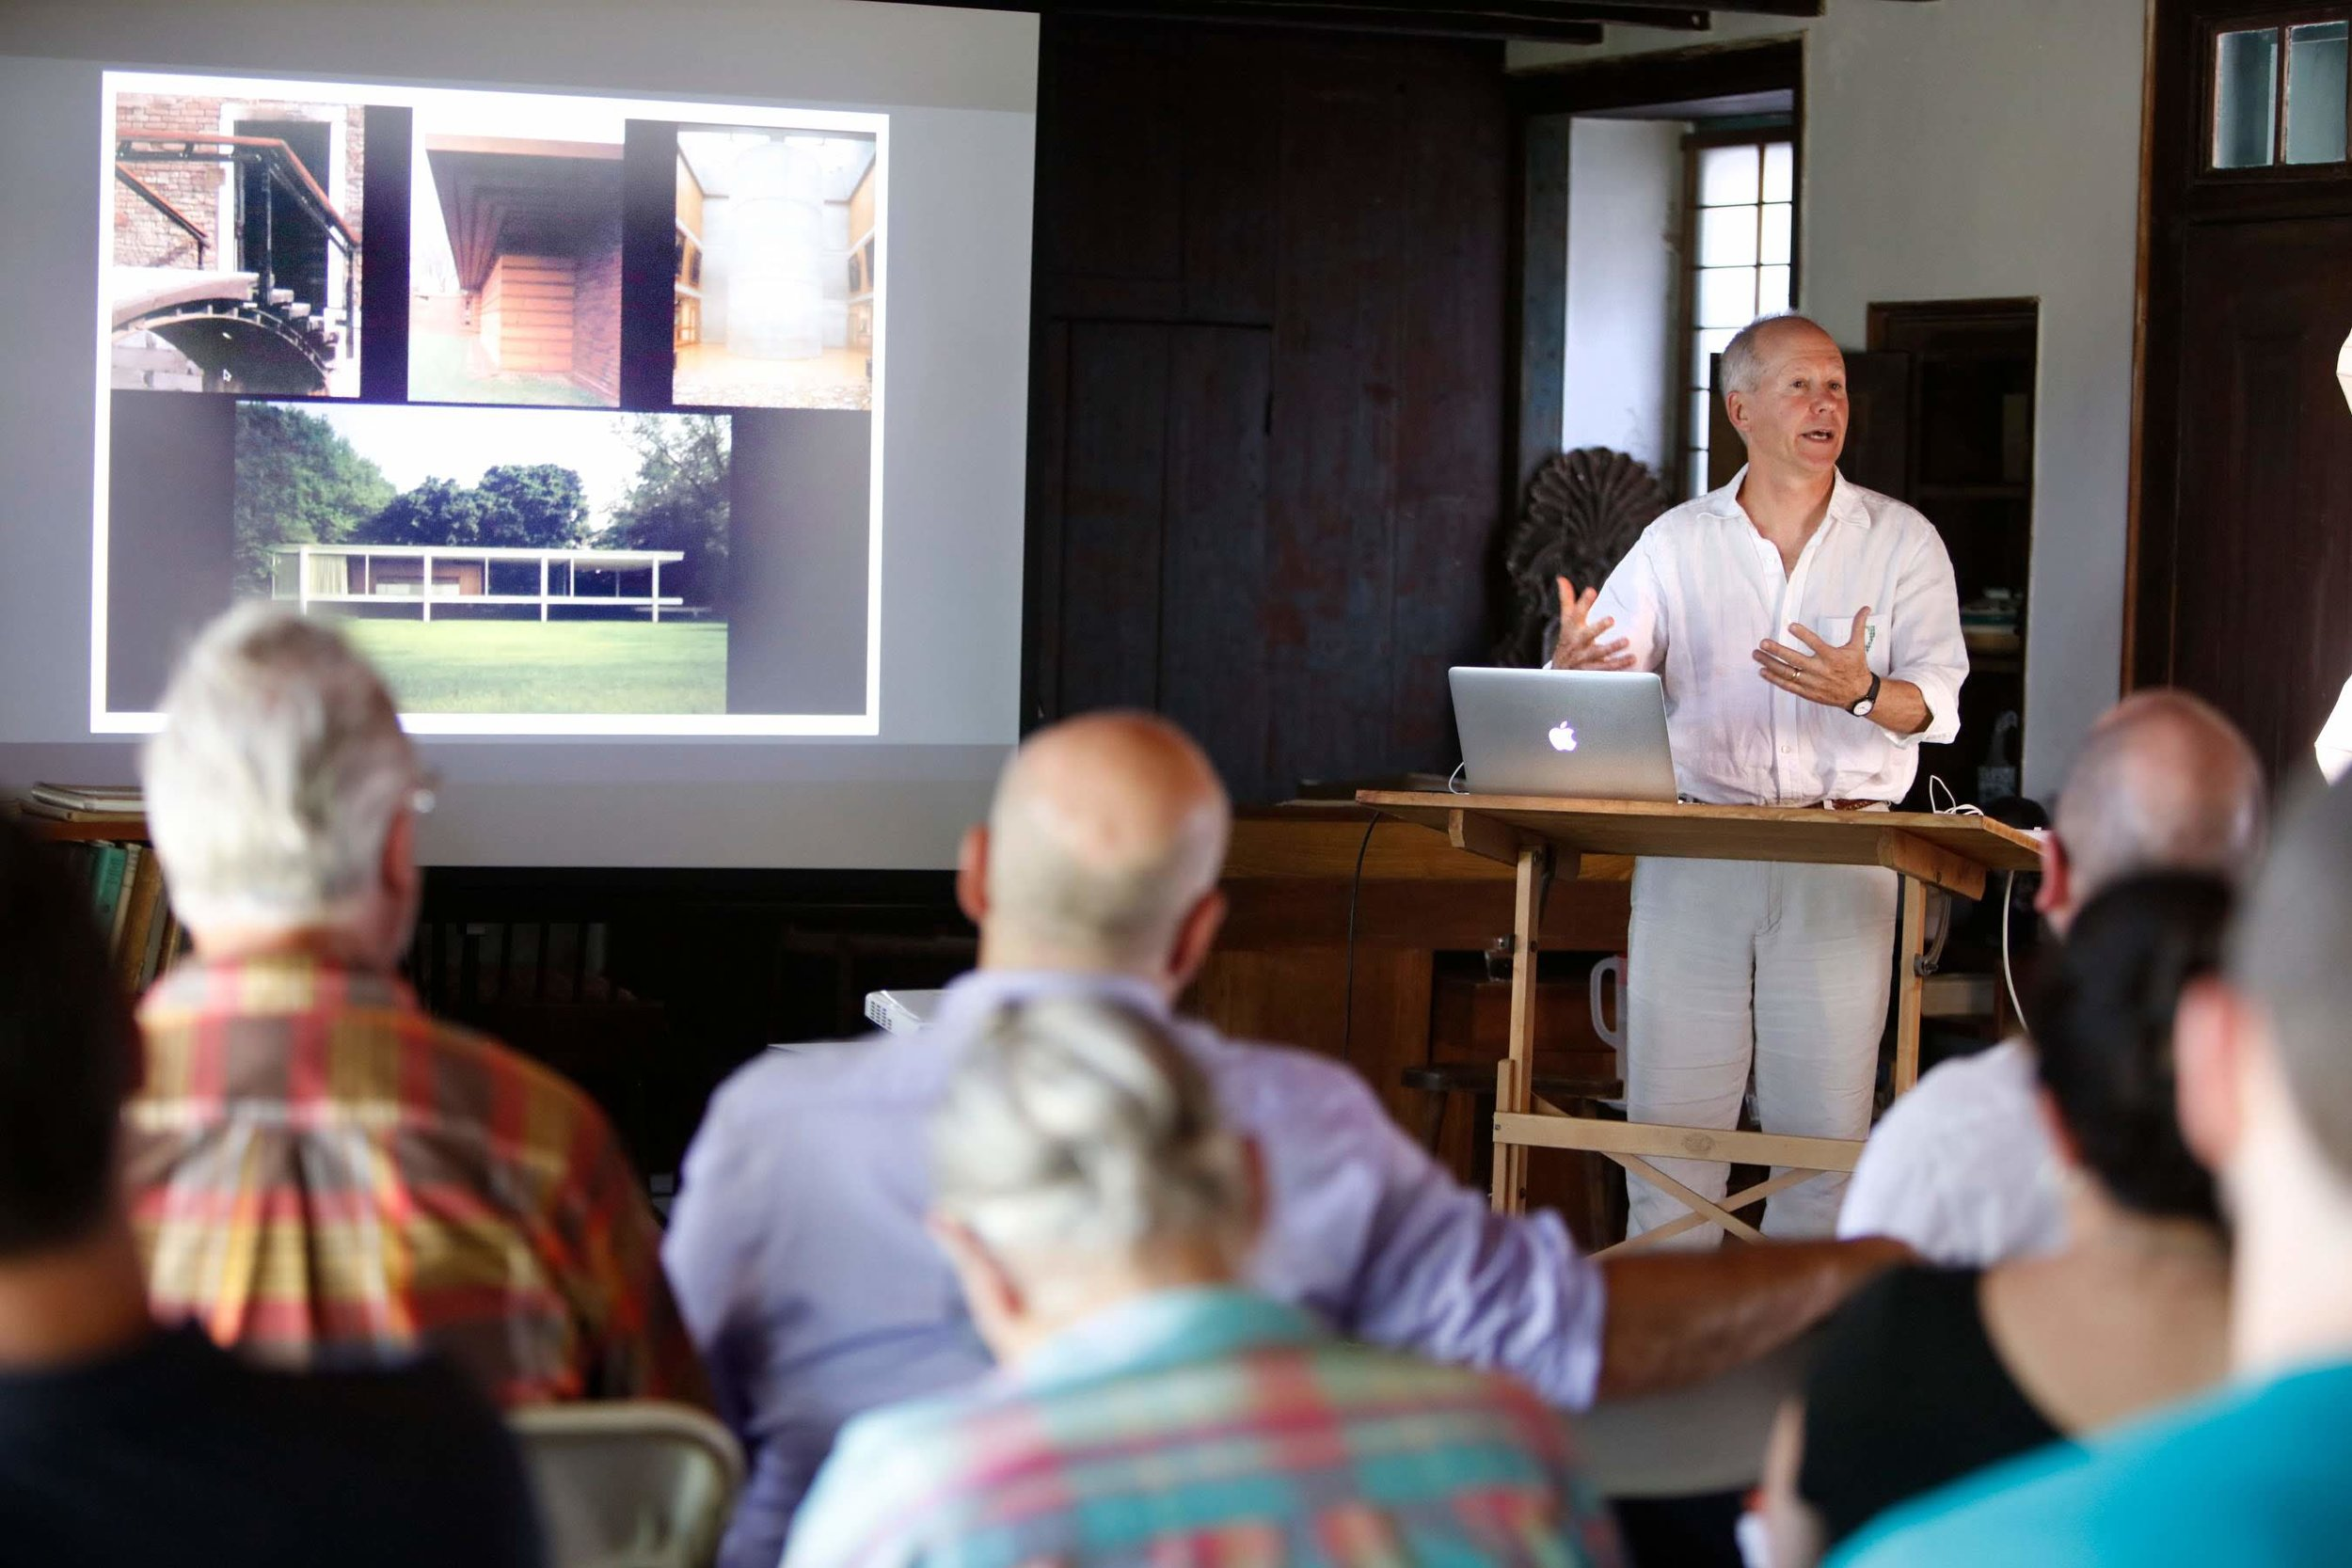 Past Events - See past workshops, lectures, open houses, and fundraisers held at the farm over the years